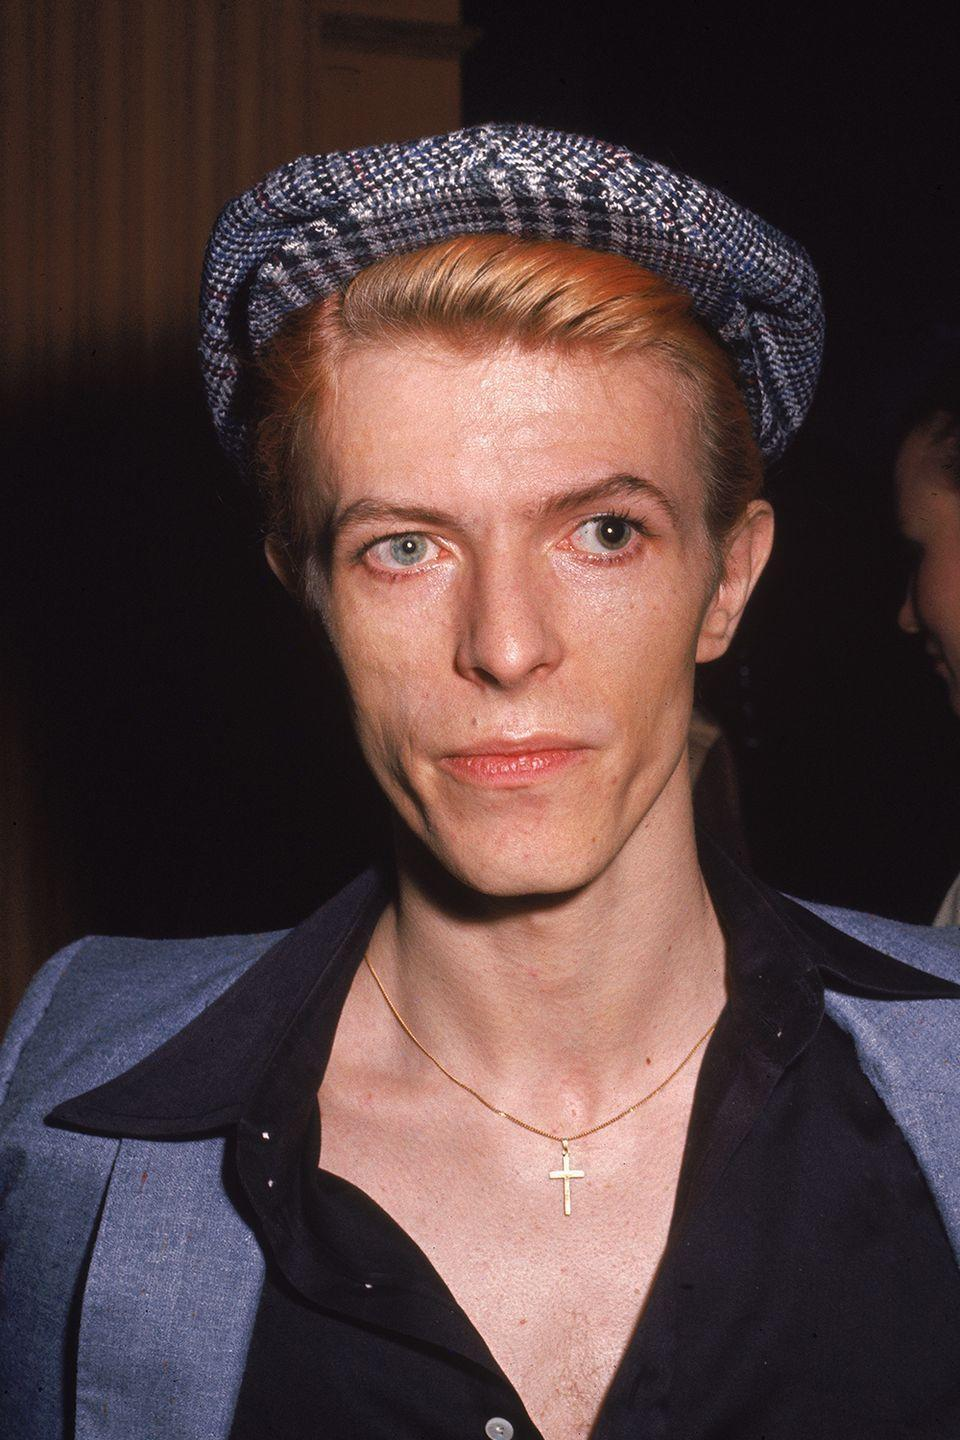 """<p>Bowie stopped by the popular late night TV show <em>The Dick Cavett Show</em> for a <a href=""""https://www.youtube.com/watch?v=RSSf3k4UU64"""" rel=""""nofollow noopener"""" target=""""_blank"""" data-ylk=""""slk:half-hour interview"""" class=""""link rapid-noclick-resp"""">half-hour interview</a> that's still remembered today. The signer's nervous laughing, lack of eye contact, and fidgeting throughout was said to be fueled by cocaine—a drug he <a href=""""https://www.rollingstone.com/music/news/inside-david-bowies-station-to-station-w462438"""" rel=""""nofollow noopener"""" target=""""_blank"""" data-ylk=""""slk:reportedly"""" class=""""link rapid-noclick-resp"""">reportedly</a> did regularly in the 70s. </p>"""